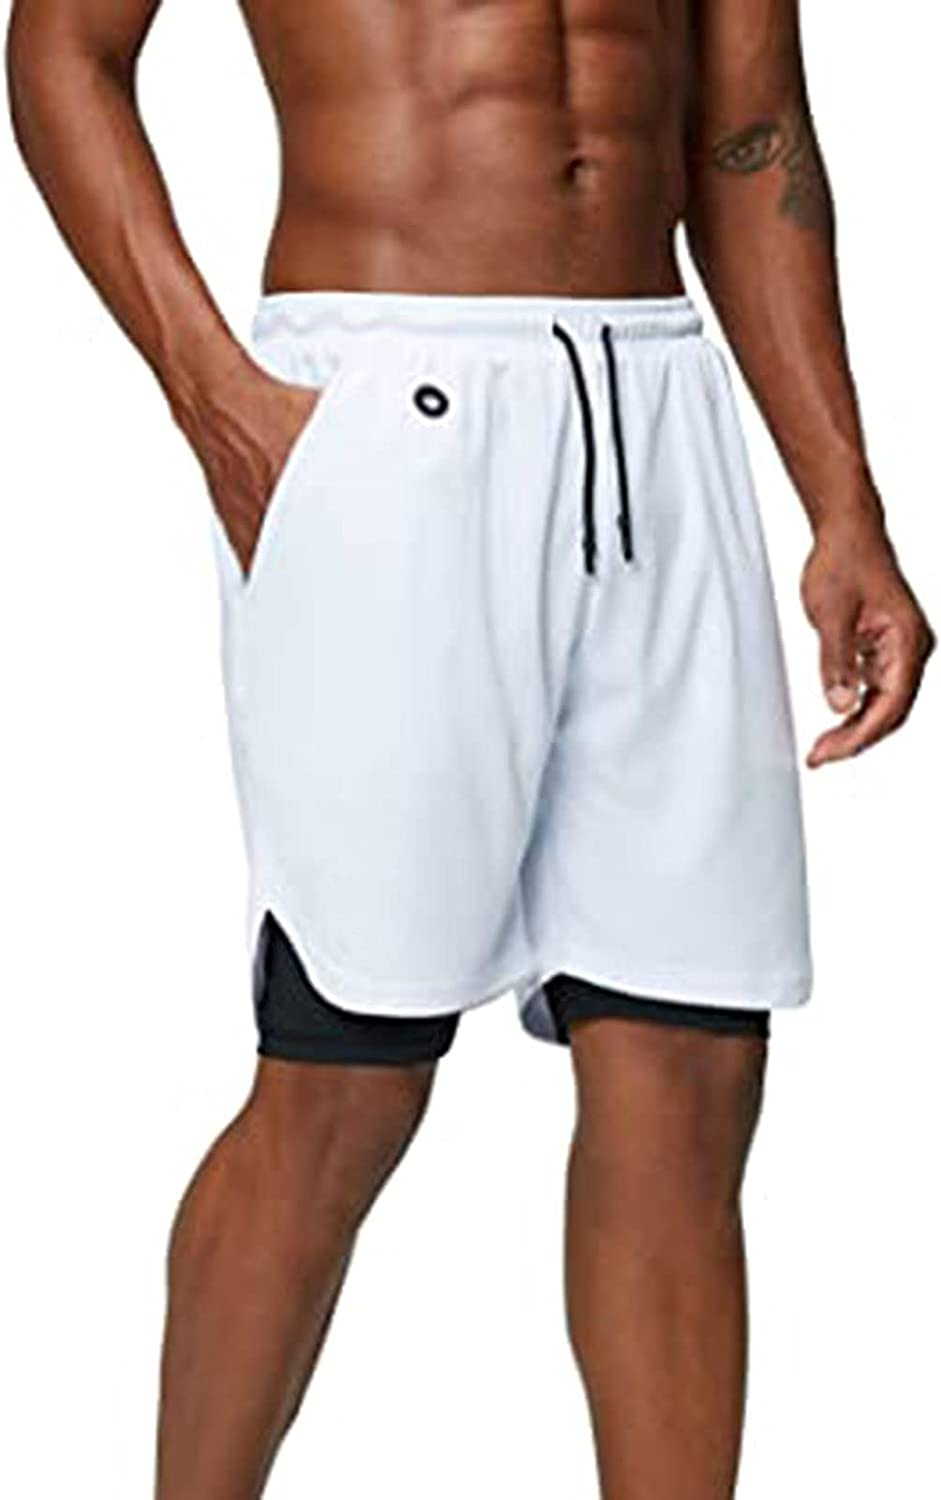 PHSHY Men's Workout Shorts Summer Lightweight Drawstring Elastic Waist Pants Casual Athletic Gym Camouflage Short